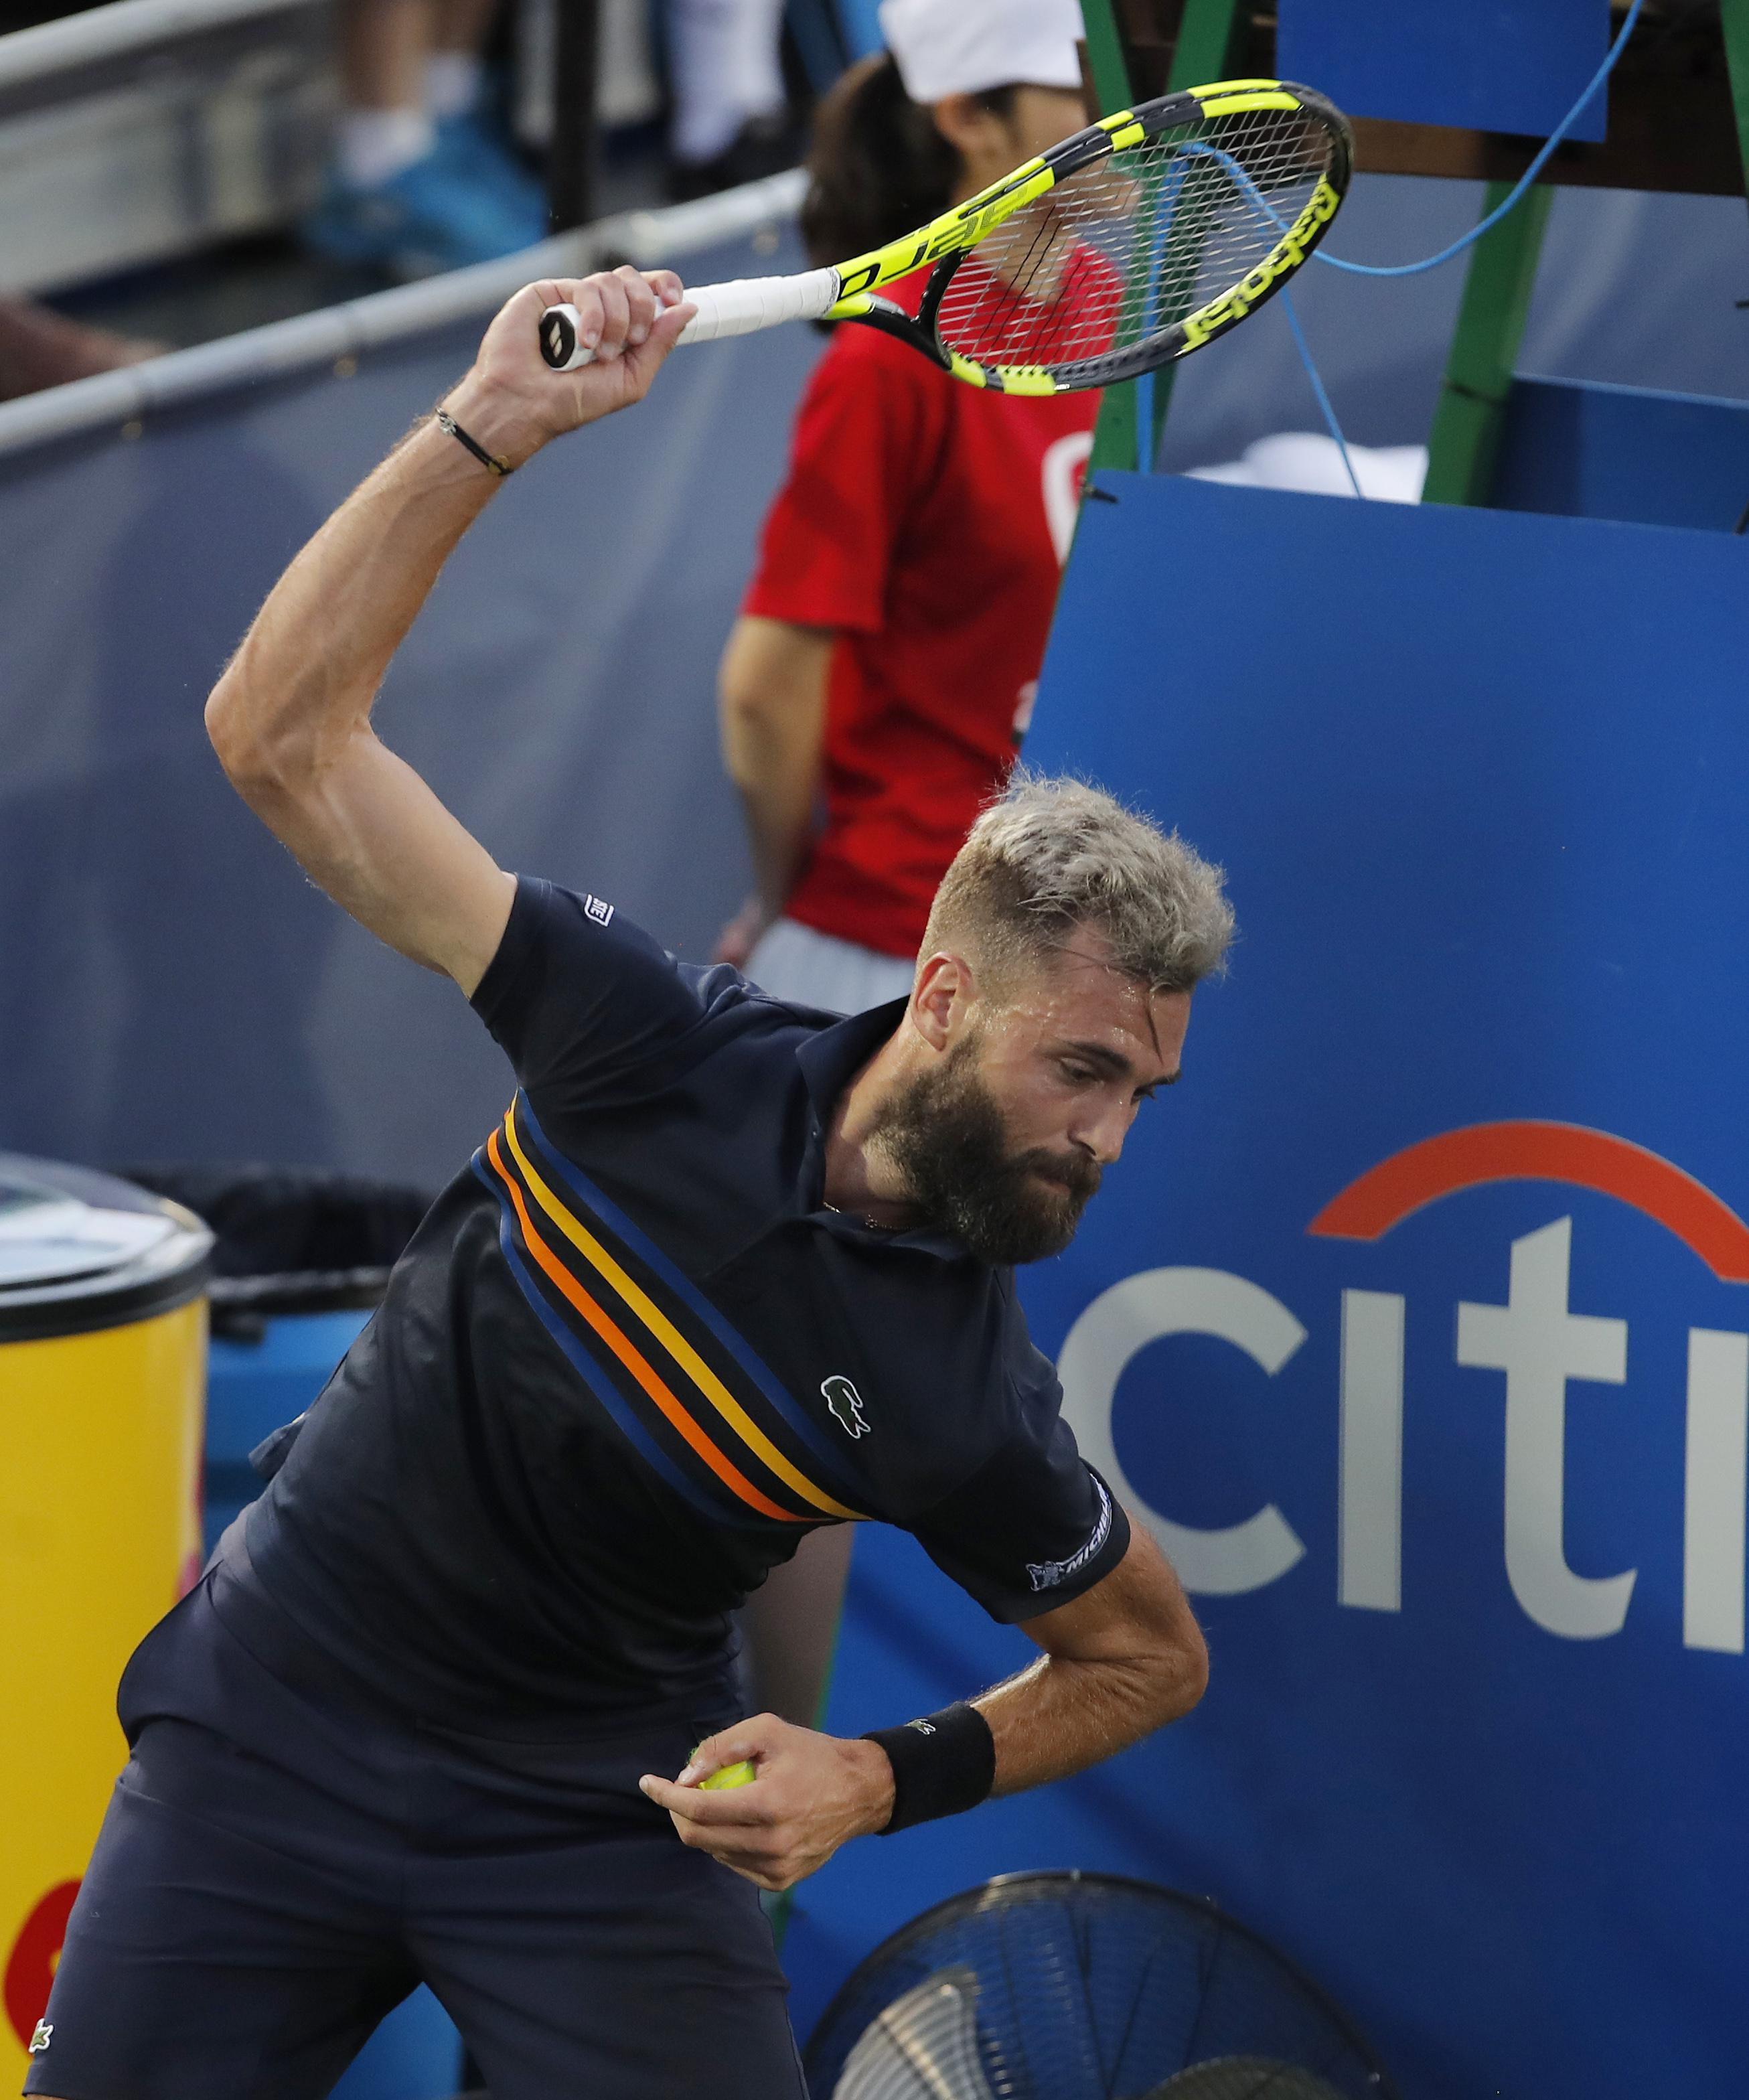 Paire had a temper tantrum after losing a point to put Baghdatis one game from victory